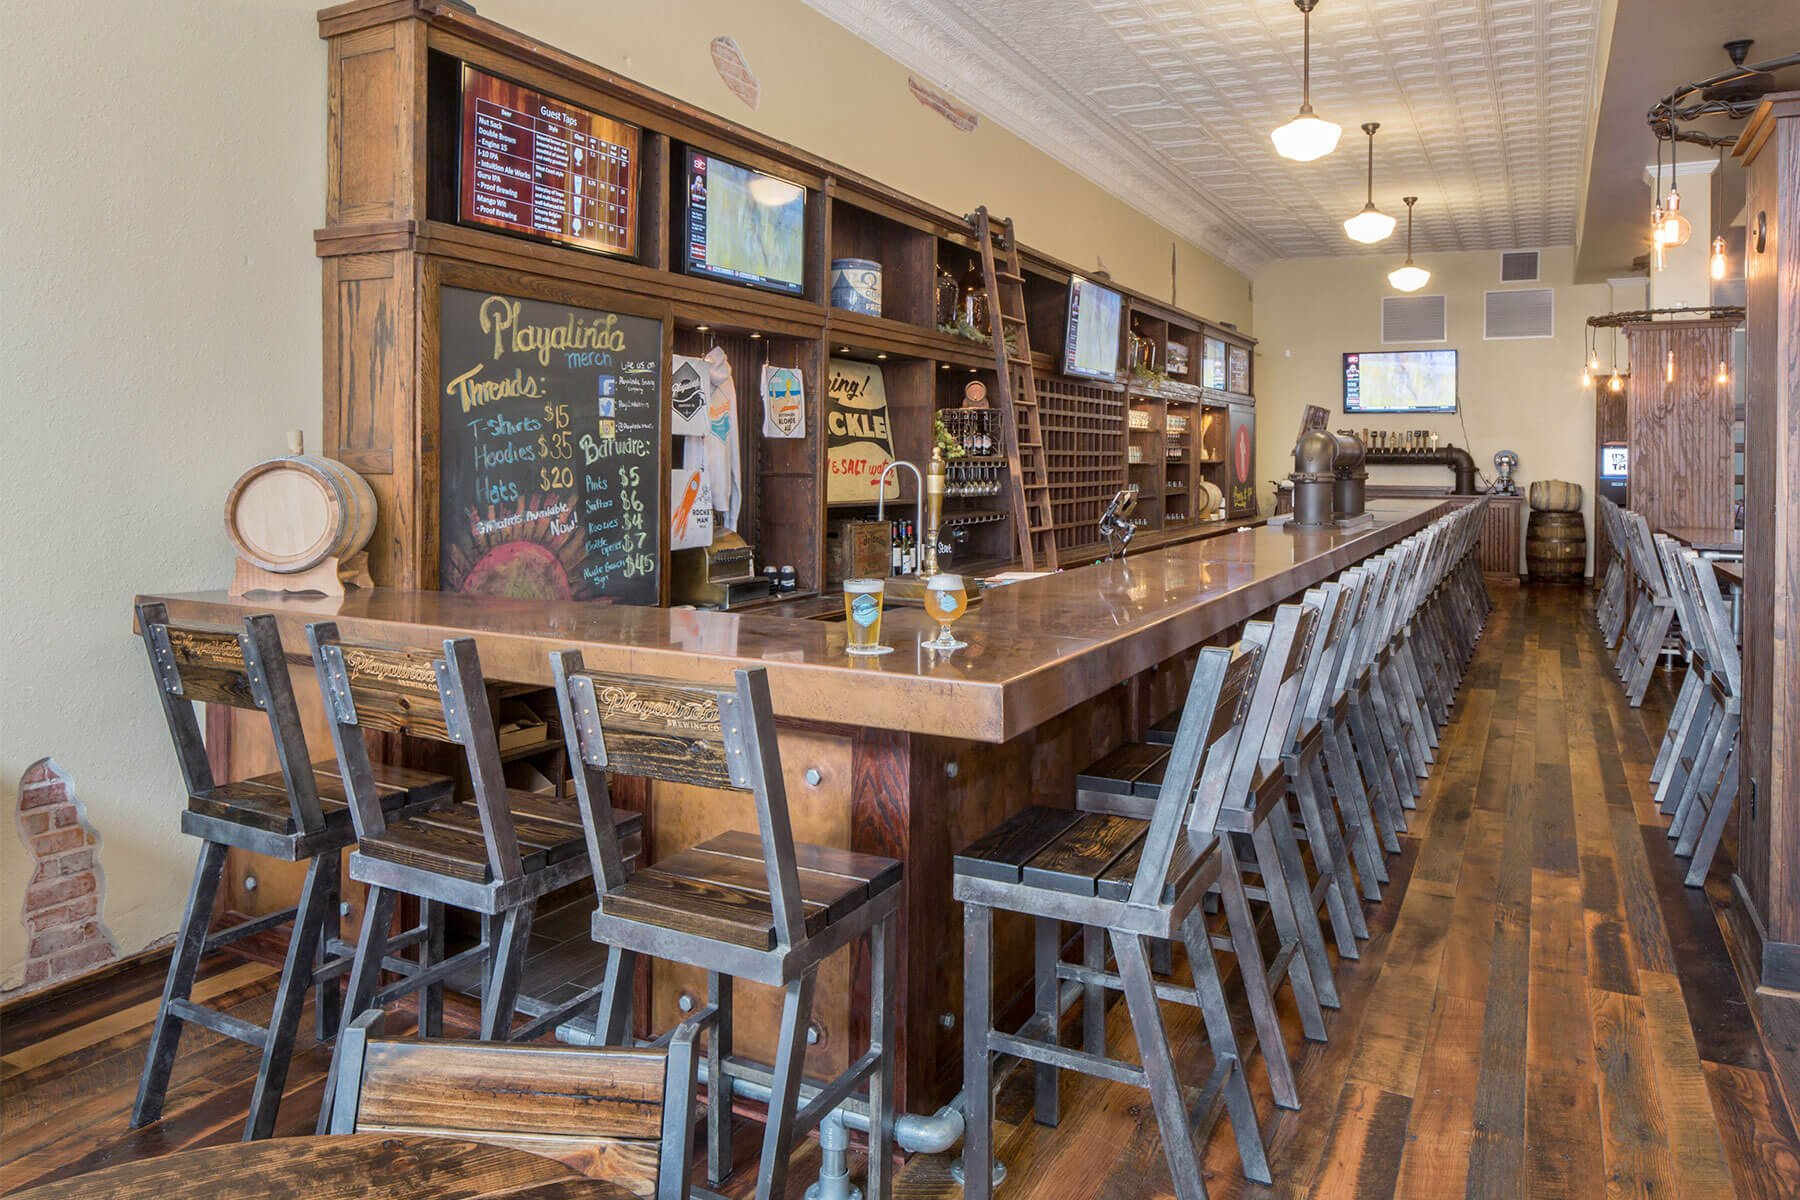 Inside the brewpub at the Playalinda Brewing Company Hardware Store in Titusville, Florida